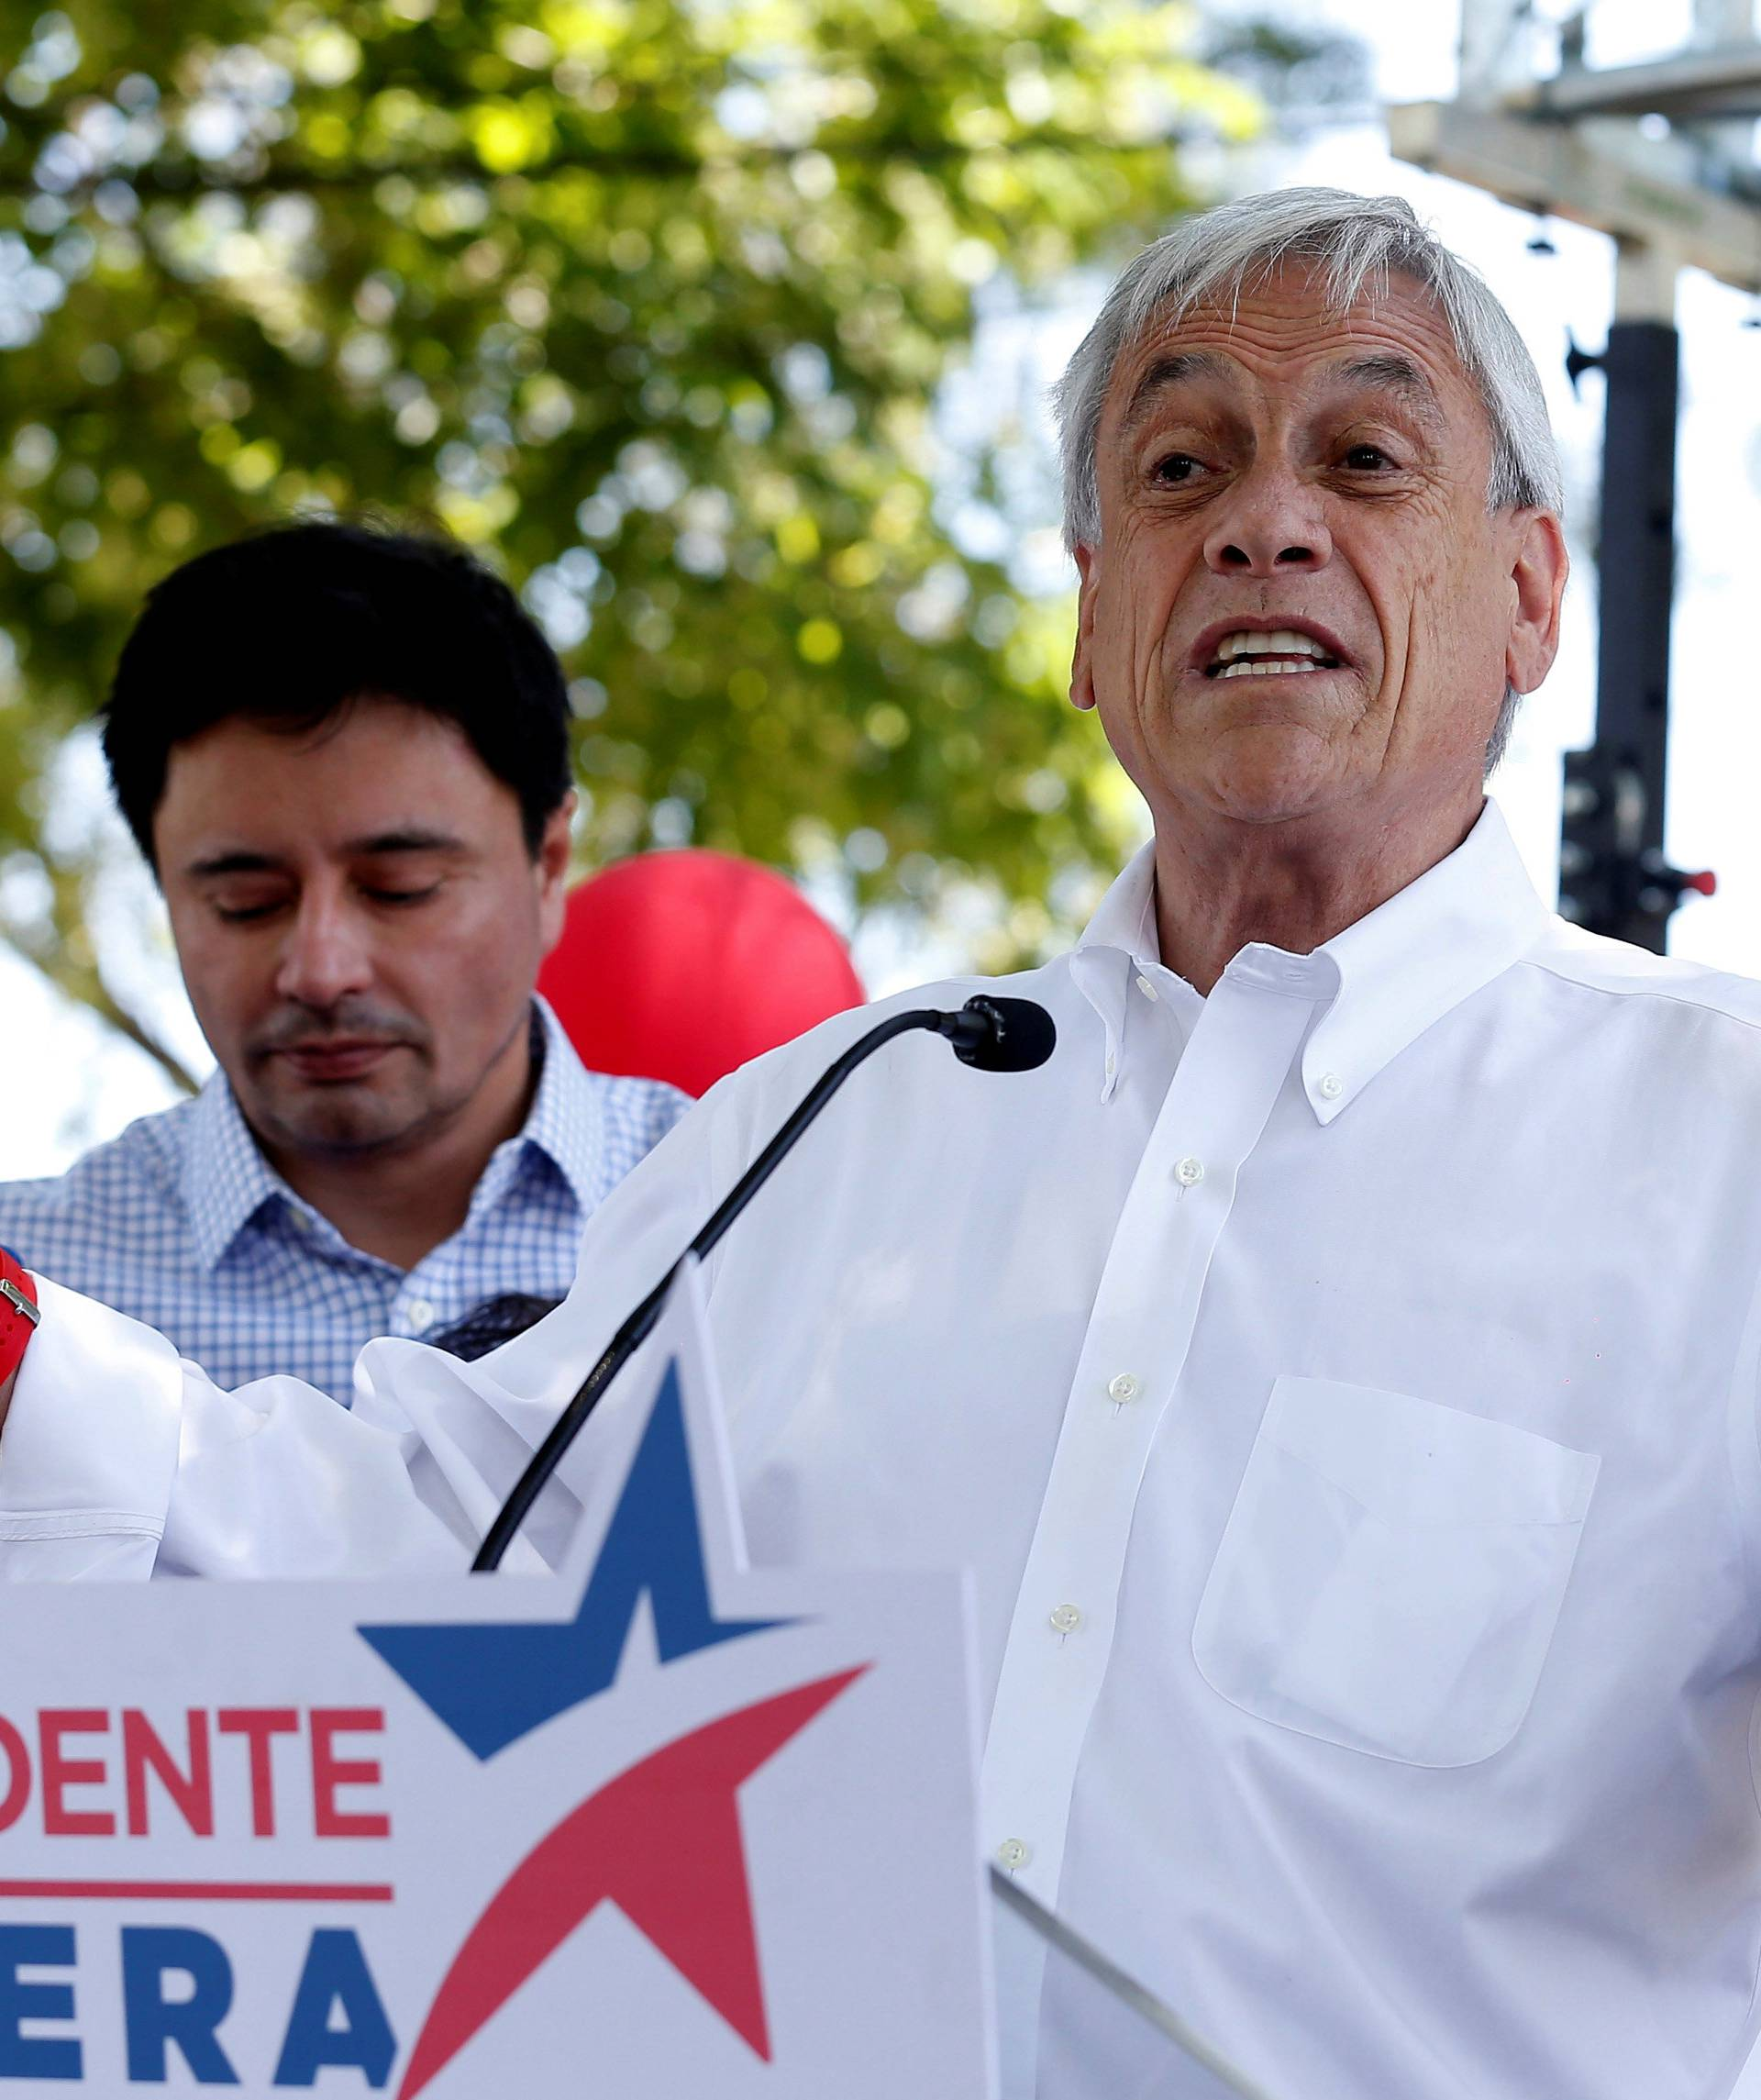 Chilean presidential candidate Sebastian Pinera speaks and takes part in a campaign rally in Santiago